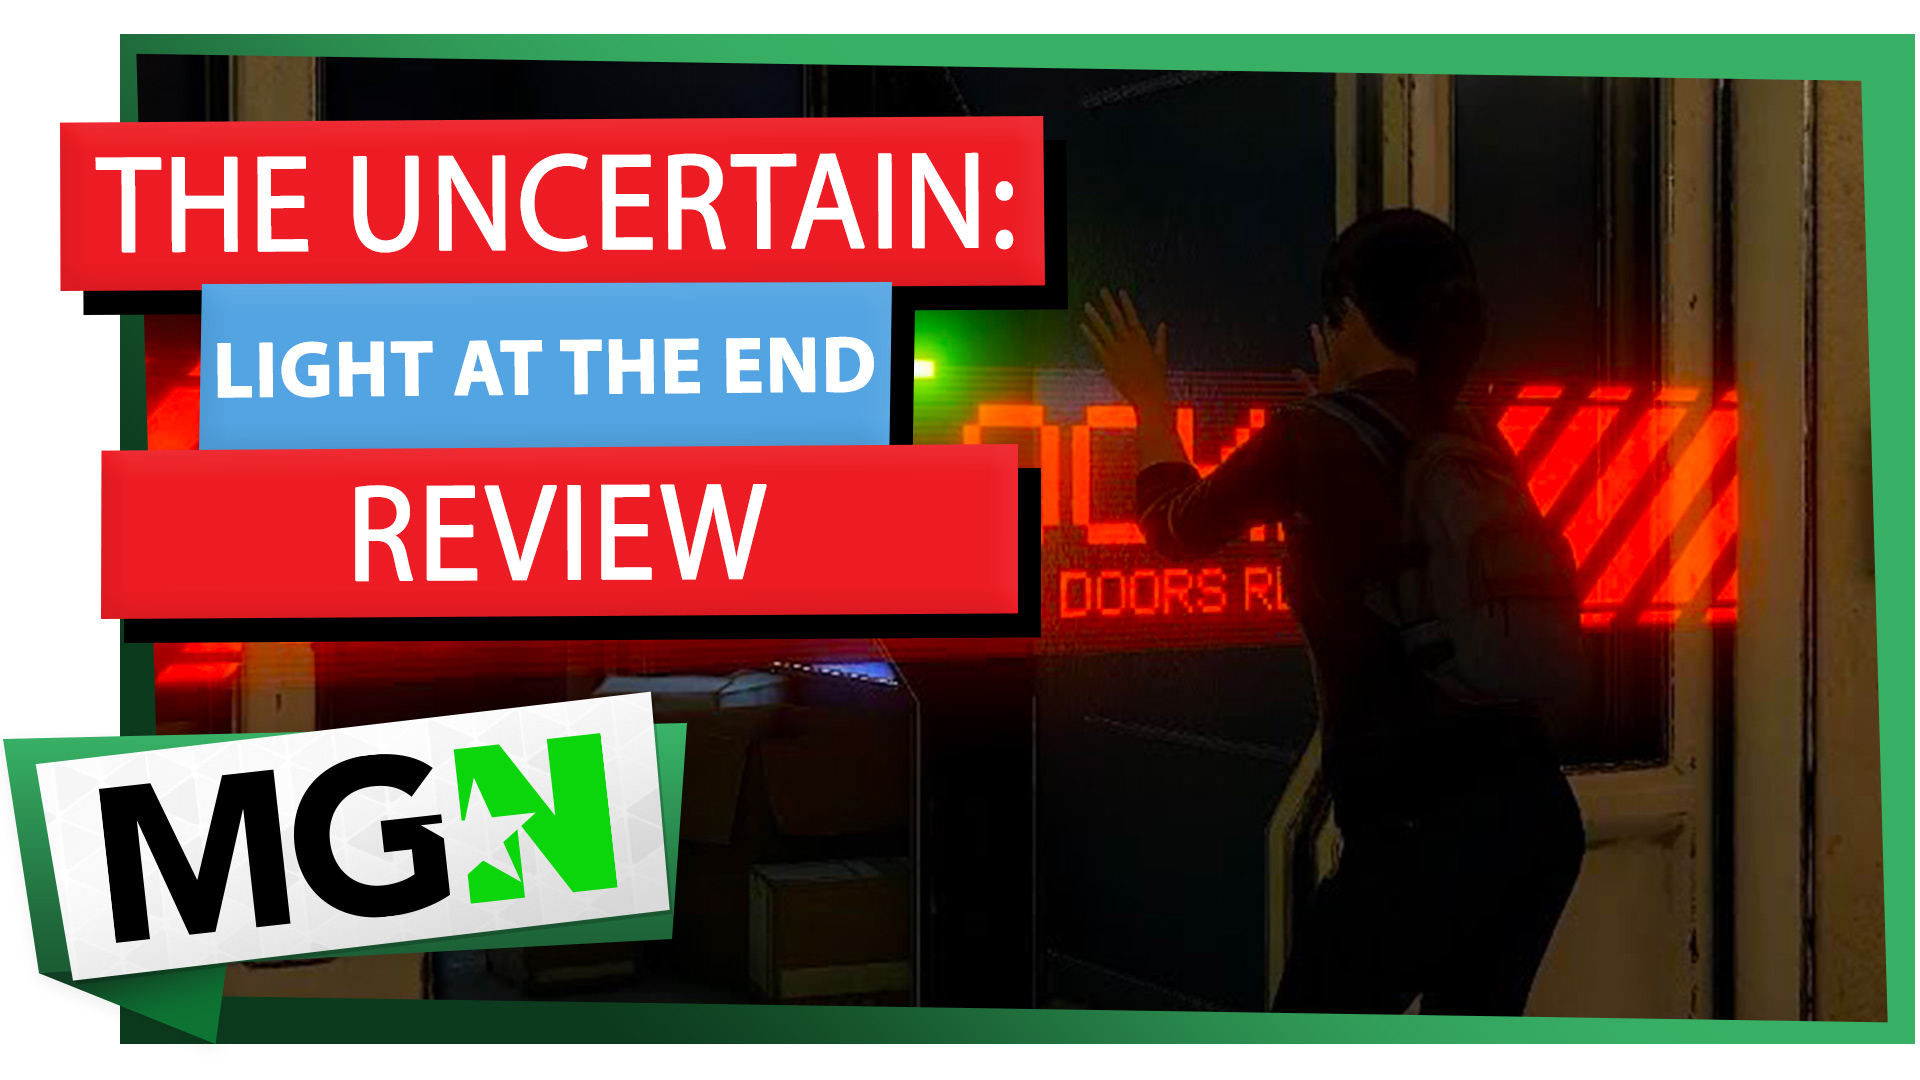 The Uncertain Light at the end review